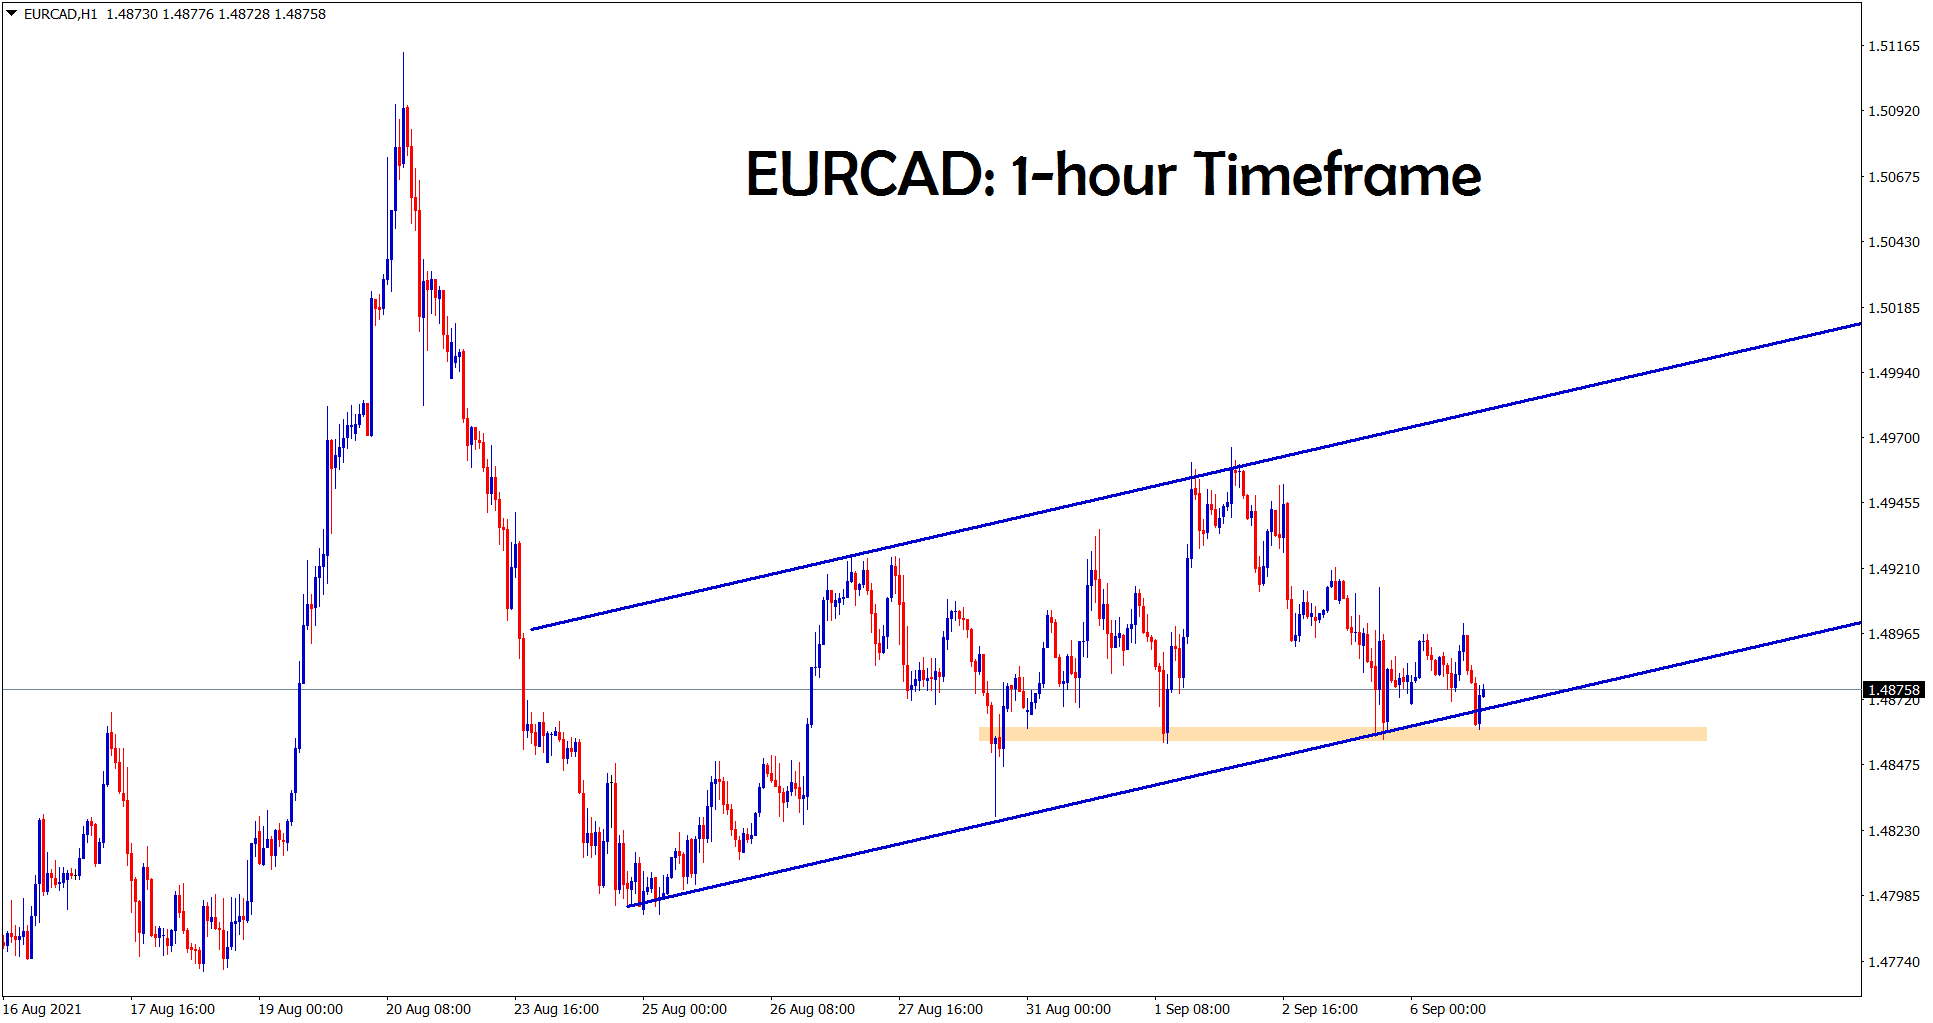 EURCAD is moving between the SR levels and moving in a channel range